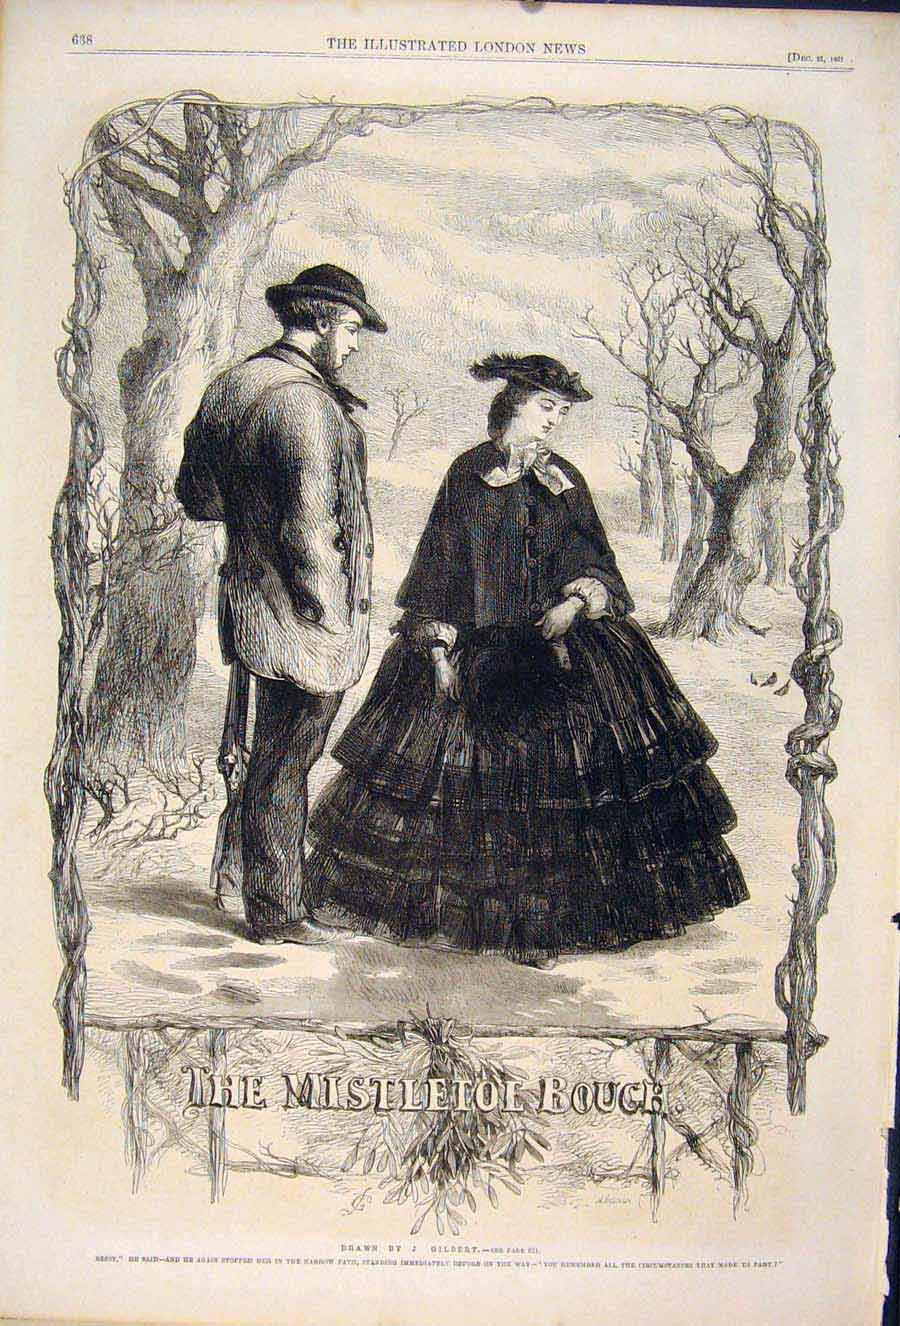 Print Mistletoe Bouch Gilbert Sketch Christmas Lady Man 1861 38Maa1 Old Original